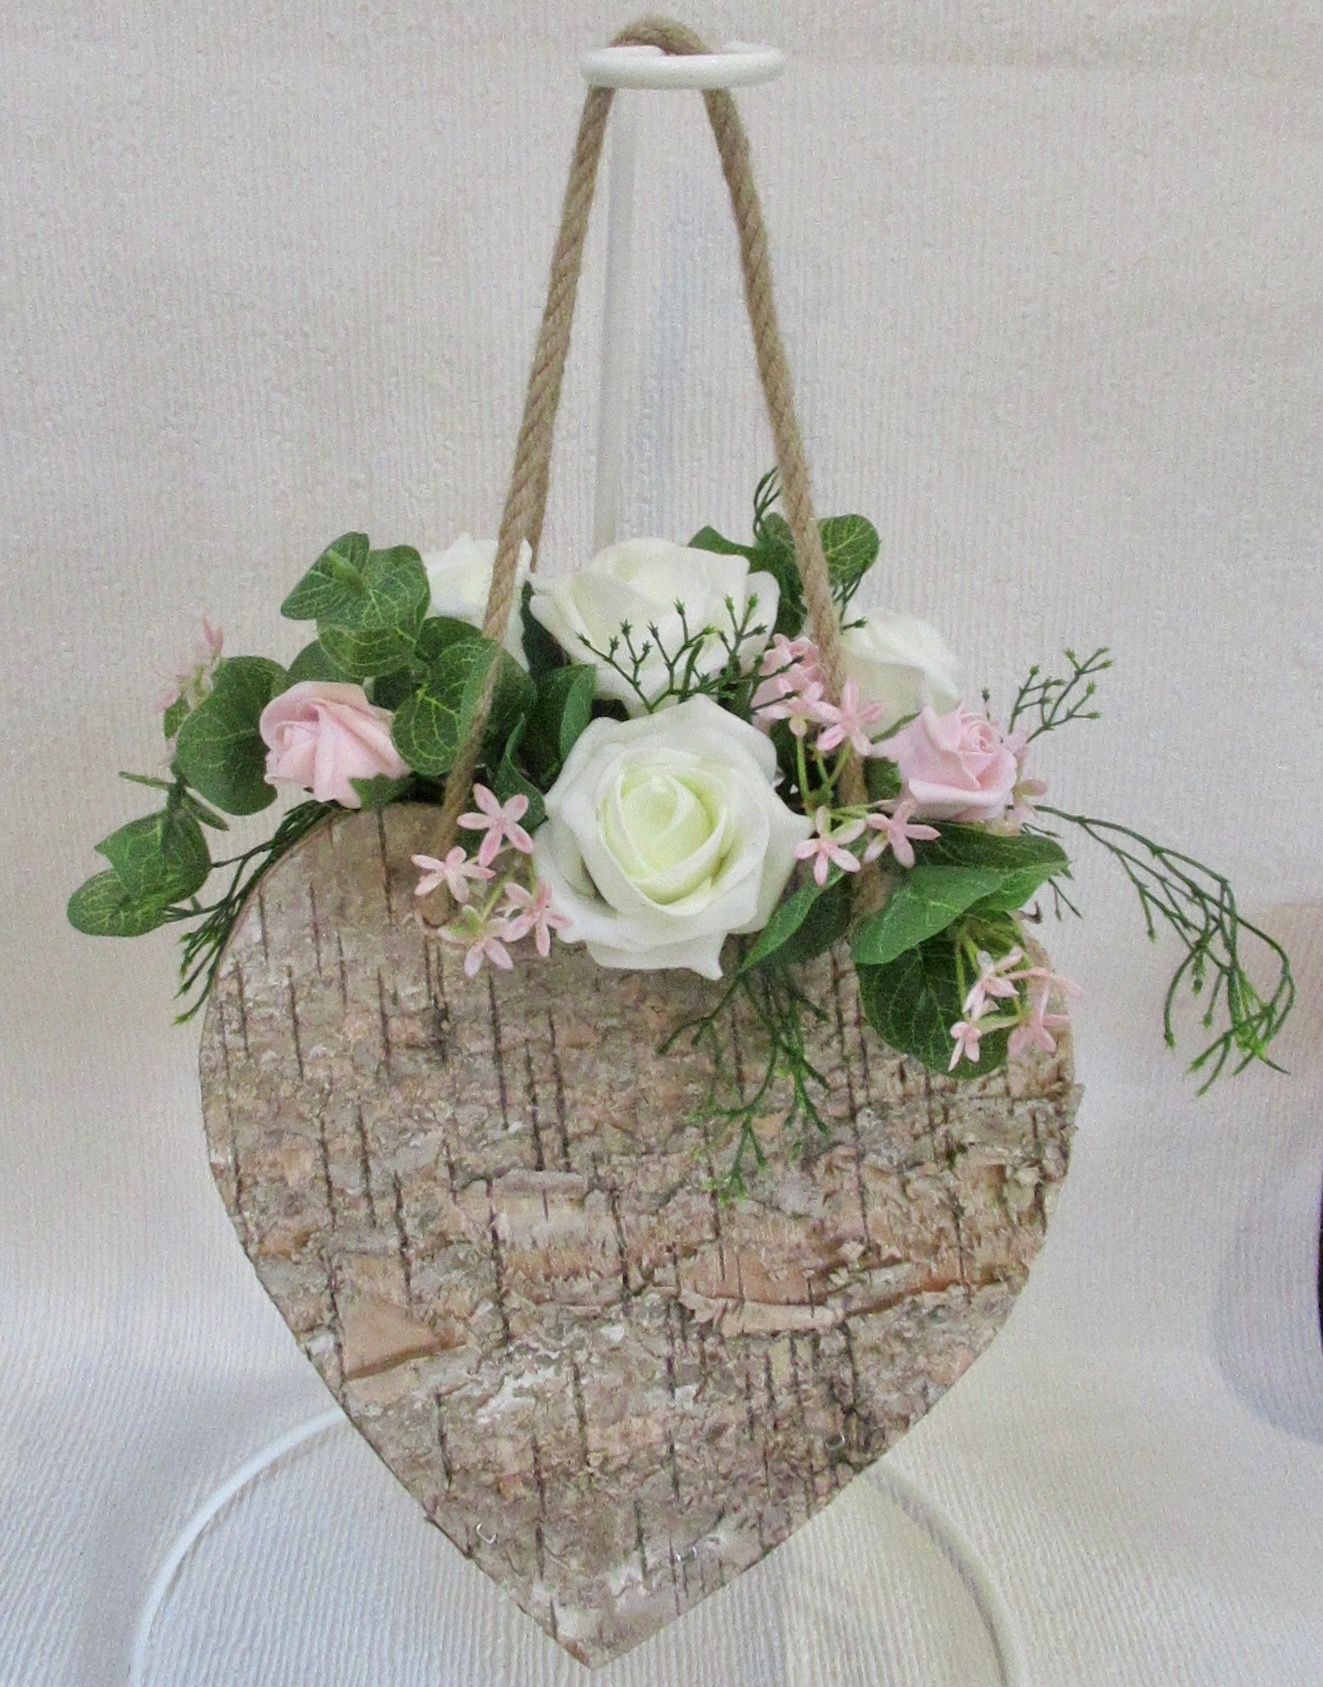 Bridesmaid Wooden Bark Hand Bag Arrangement